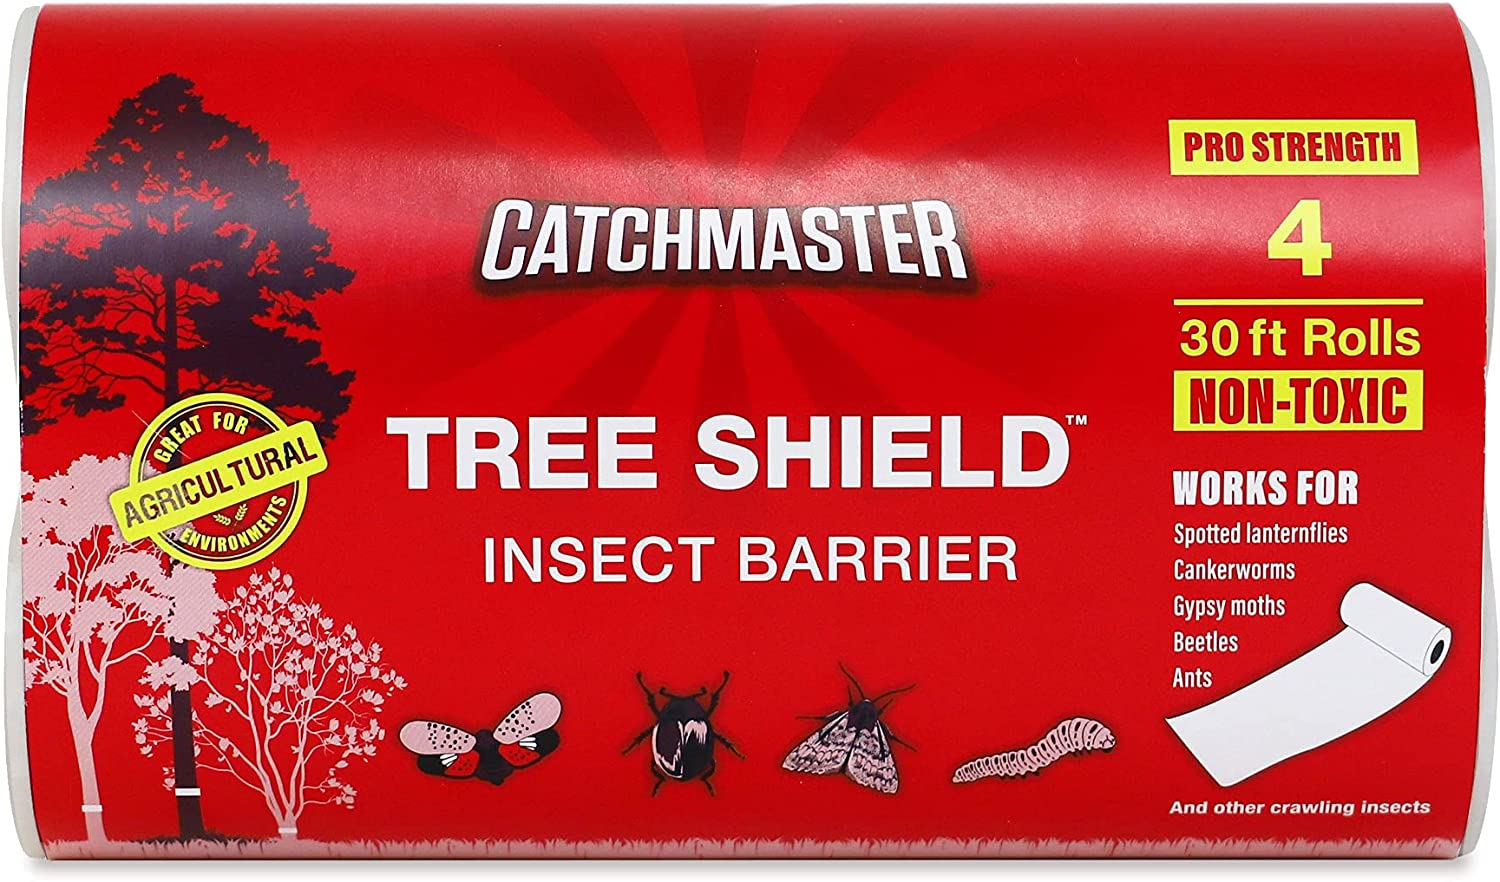 Catchmaster Tree Banding Shield / Protection Sticky Fly Tape Tree Insect Barrier Rolls - 4 Roll Pack